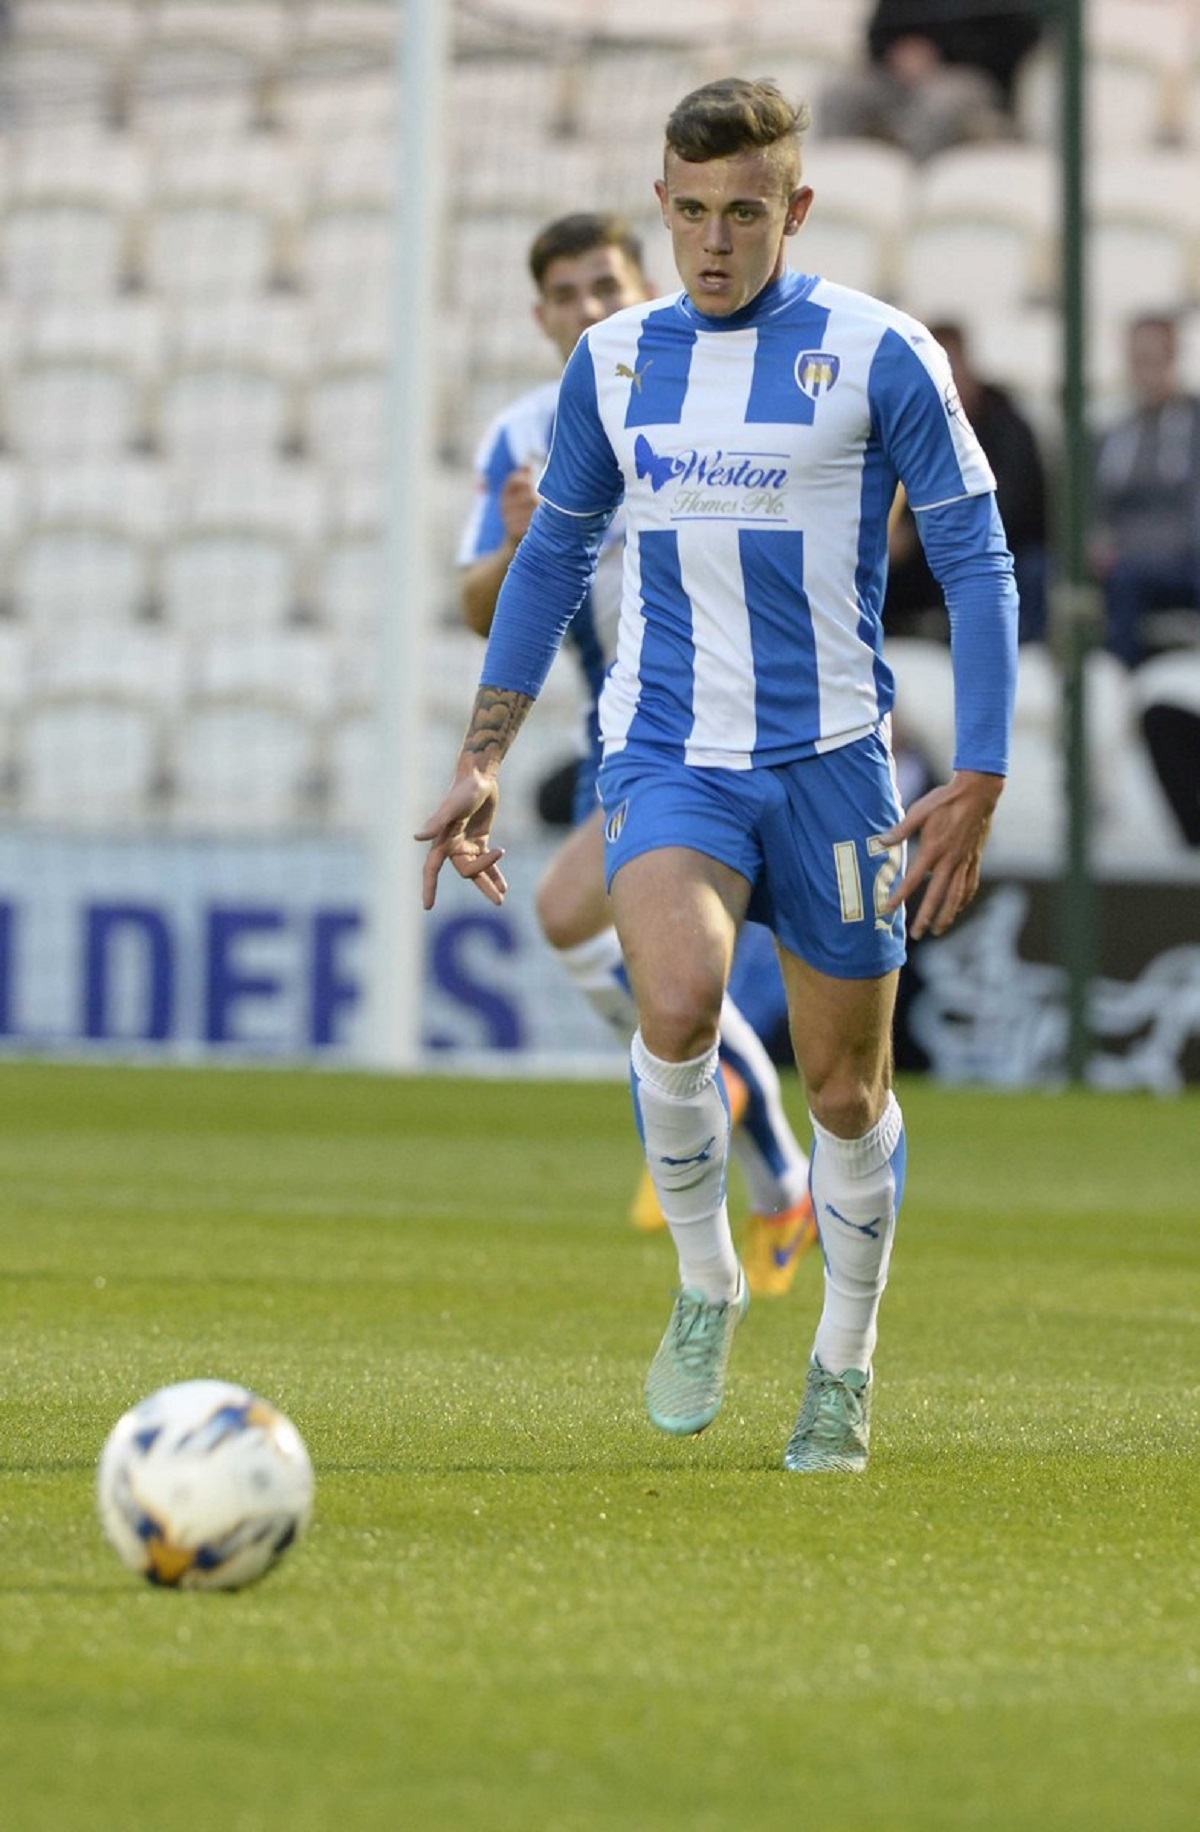 New deal - Sammie Szmodics has agreed a new three-year deal with Colchester United.